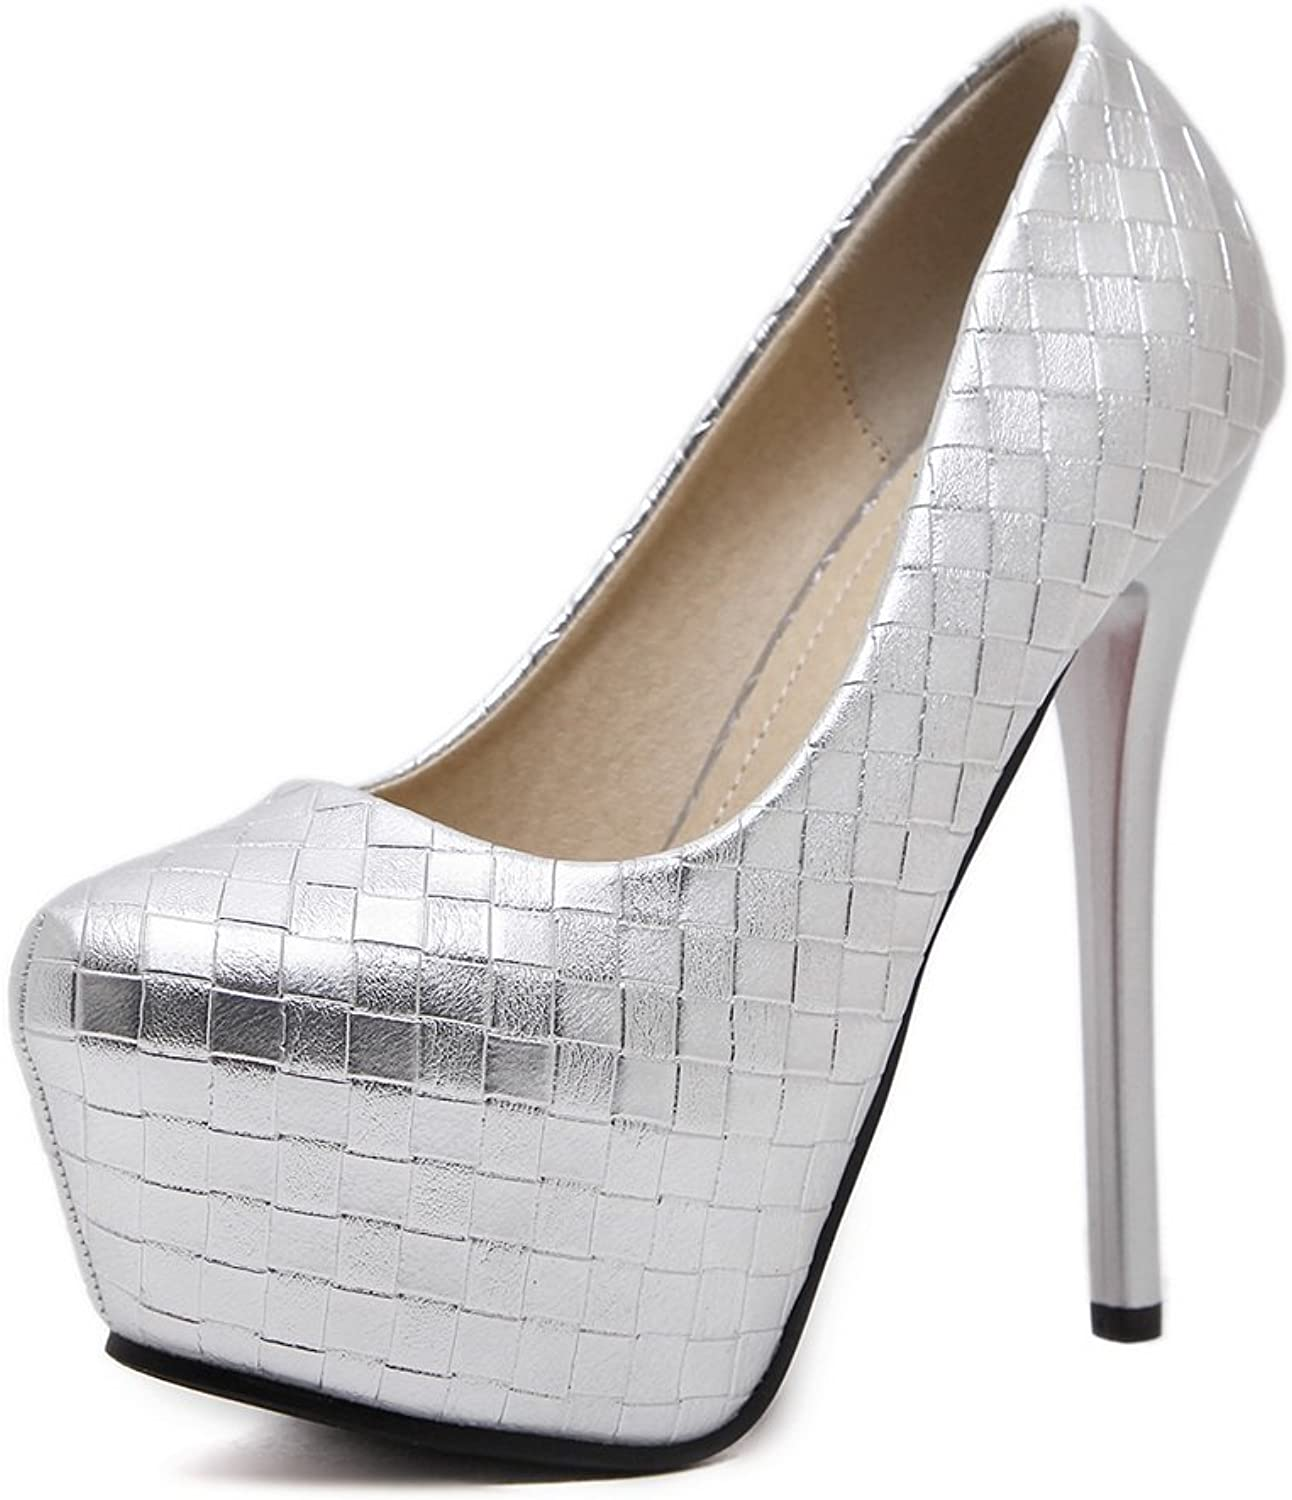 1TO9 Womens Spikes Stilettos Platform Low-Cut Uppers Silver Urethane Pumps shoes - 7 B(M) US